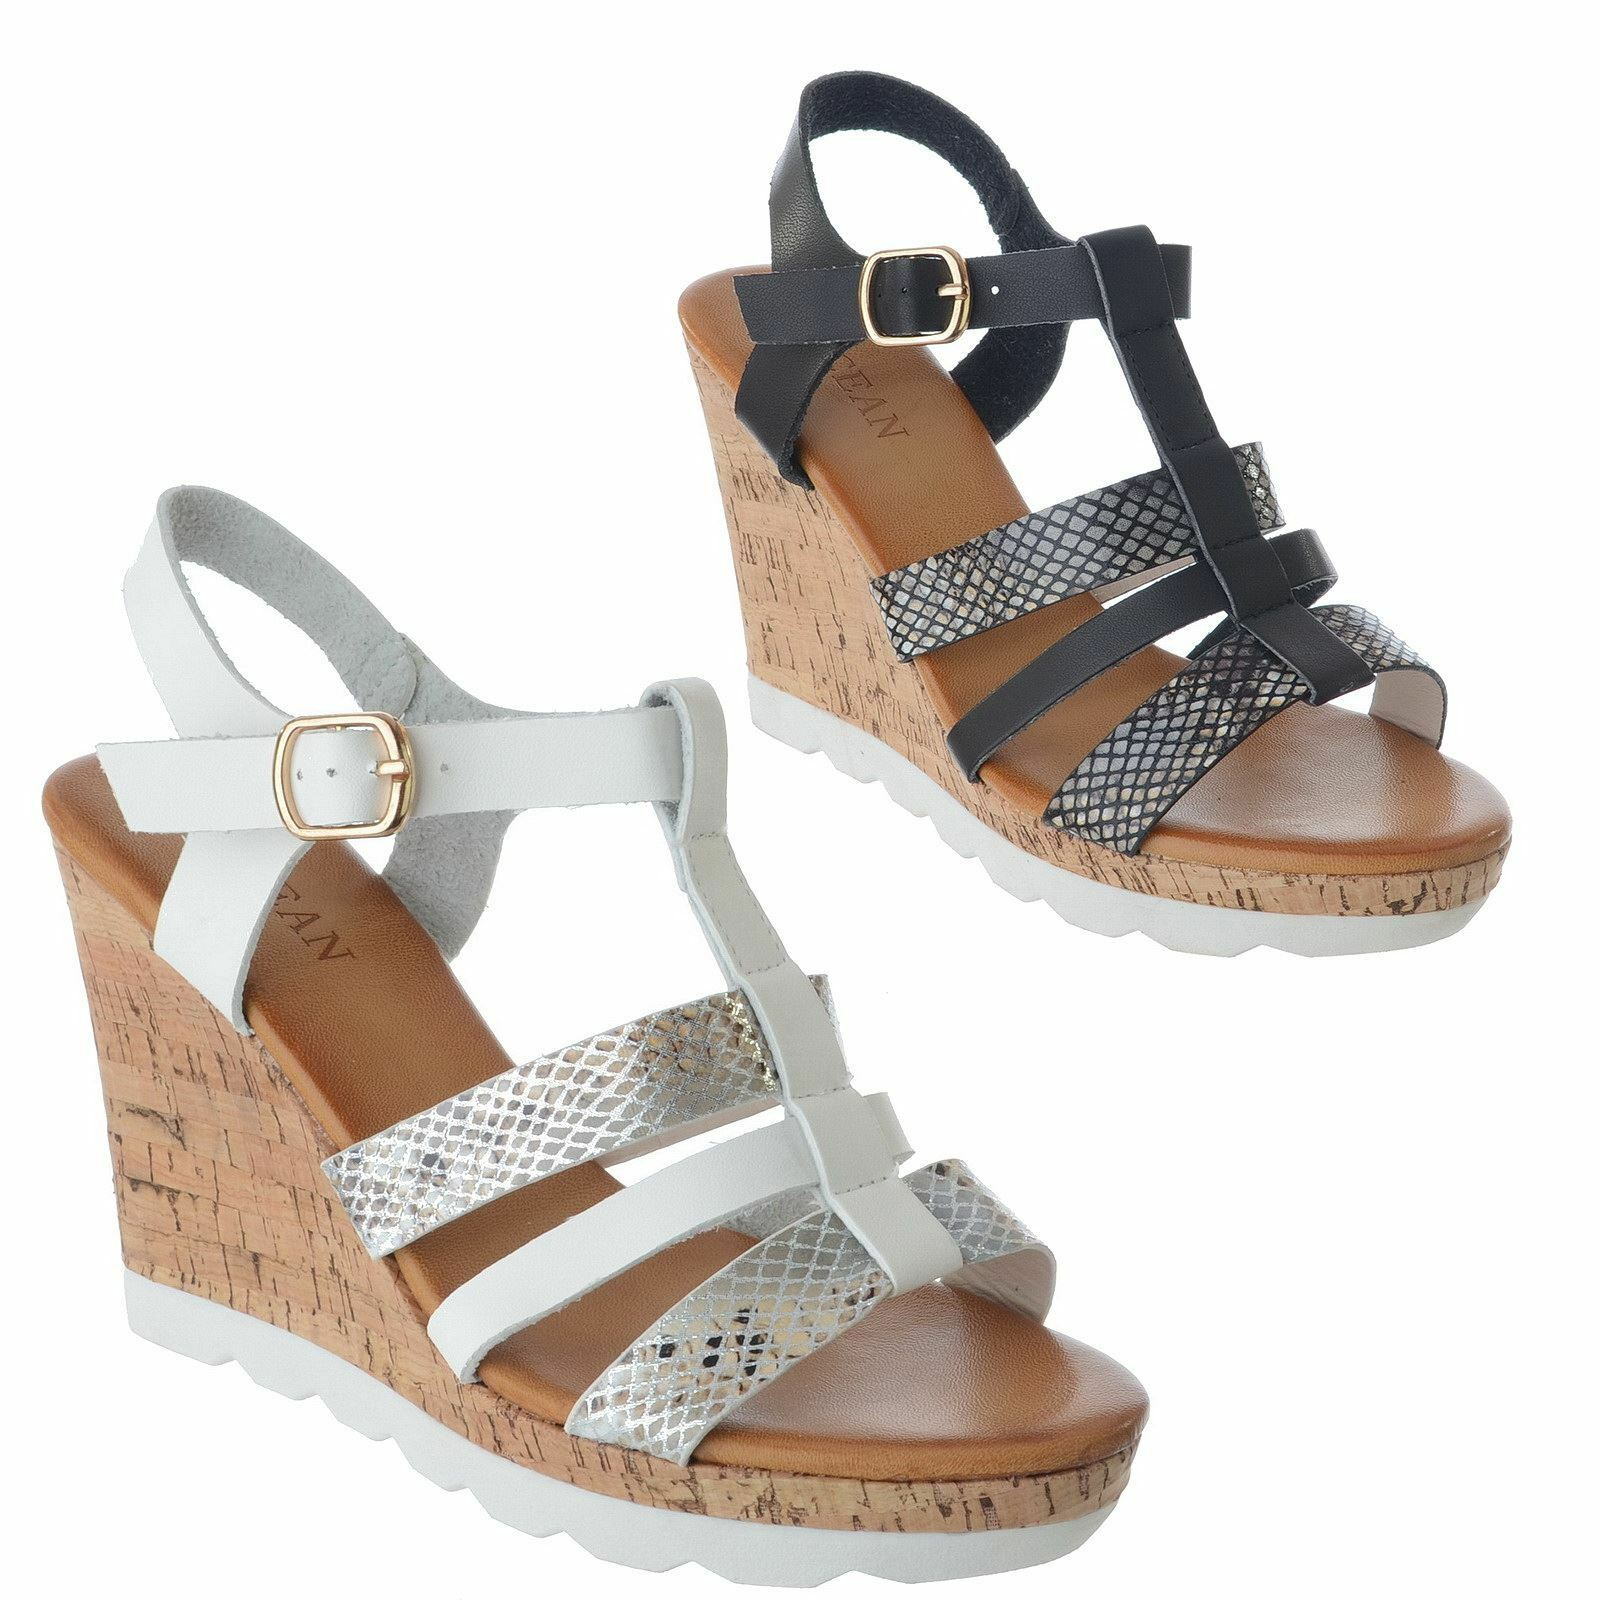 WOMENS LADIES STRAPPY HIGH CORK WEDGE HEEL ANKLE SIZE STRAP BUCKLE SANDALS SHOES SIZE ANKLE 17d94d